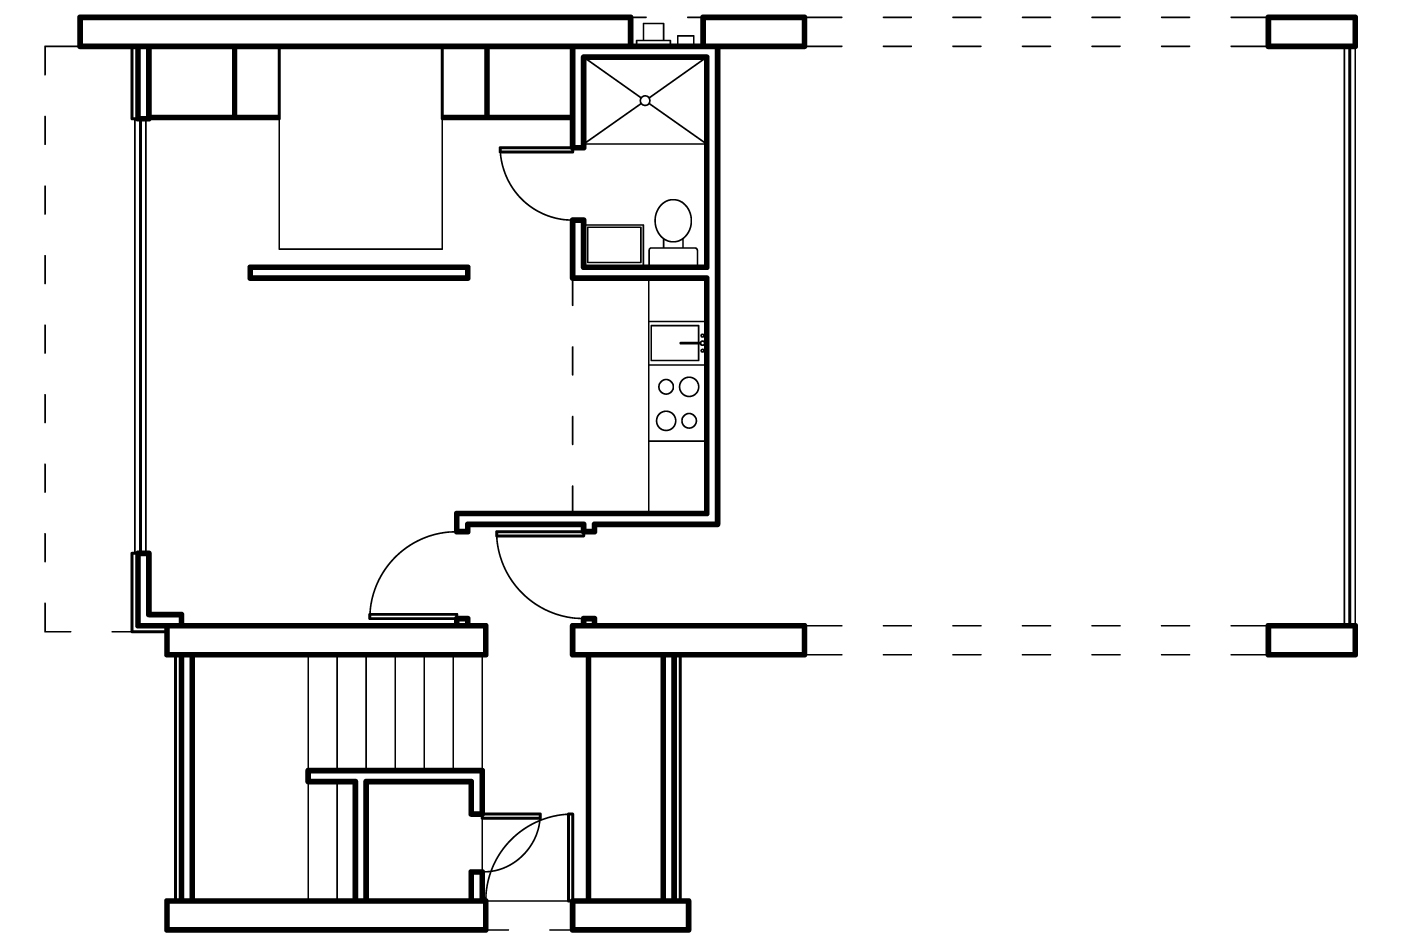 House Plans And Design Modern House Plans Drawings